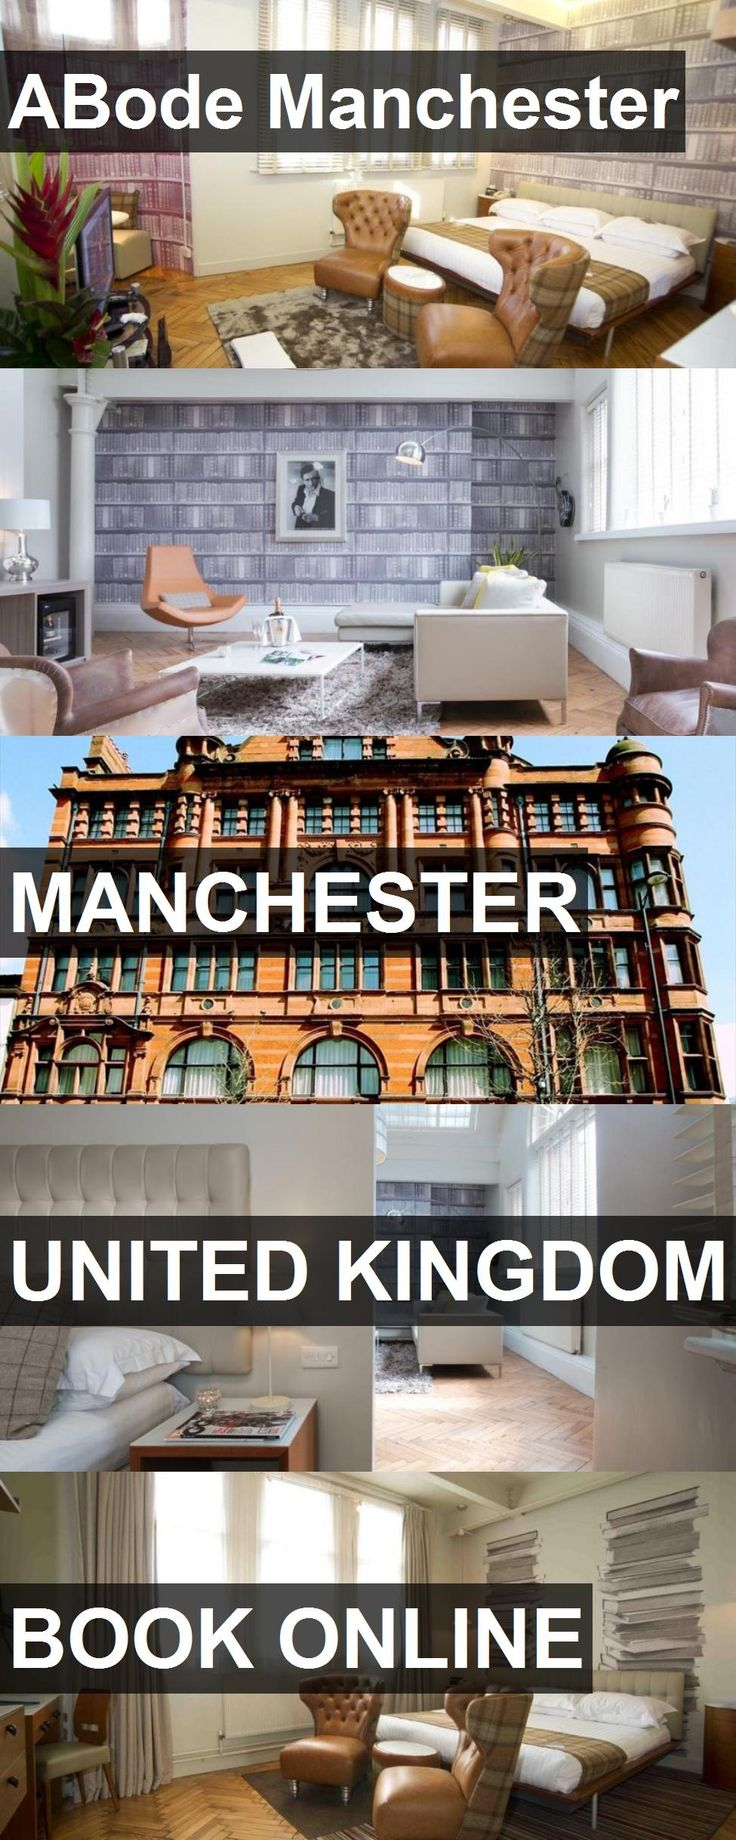 Hotel ABode Manchester in Manchester, United Kingdom. For more information, photos, reviews and best prices please follow the link. #UnitedKingdom #Manchester #travel #vacation #hotel